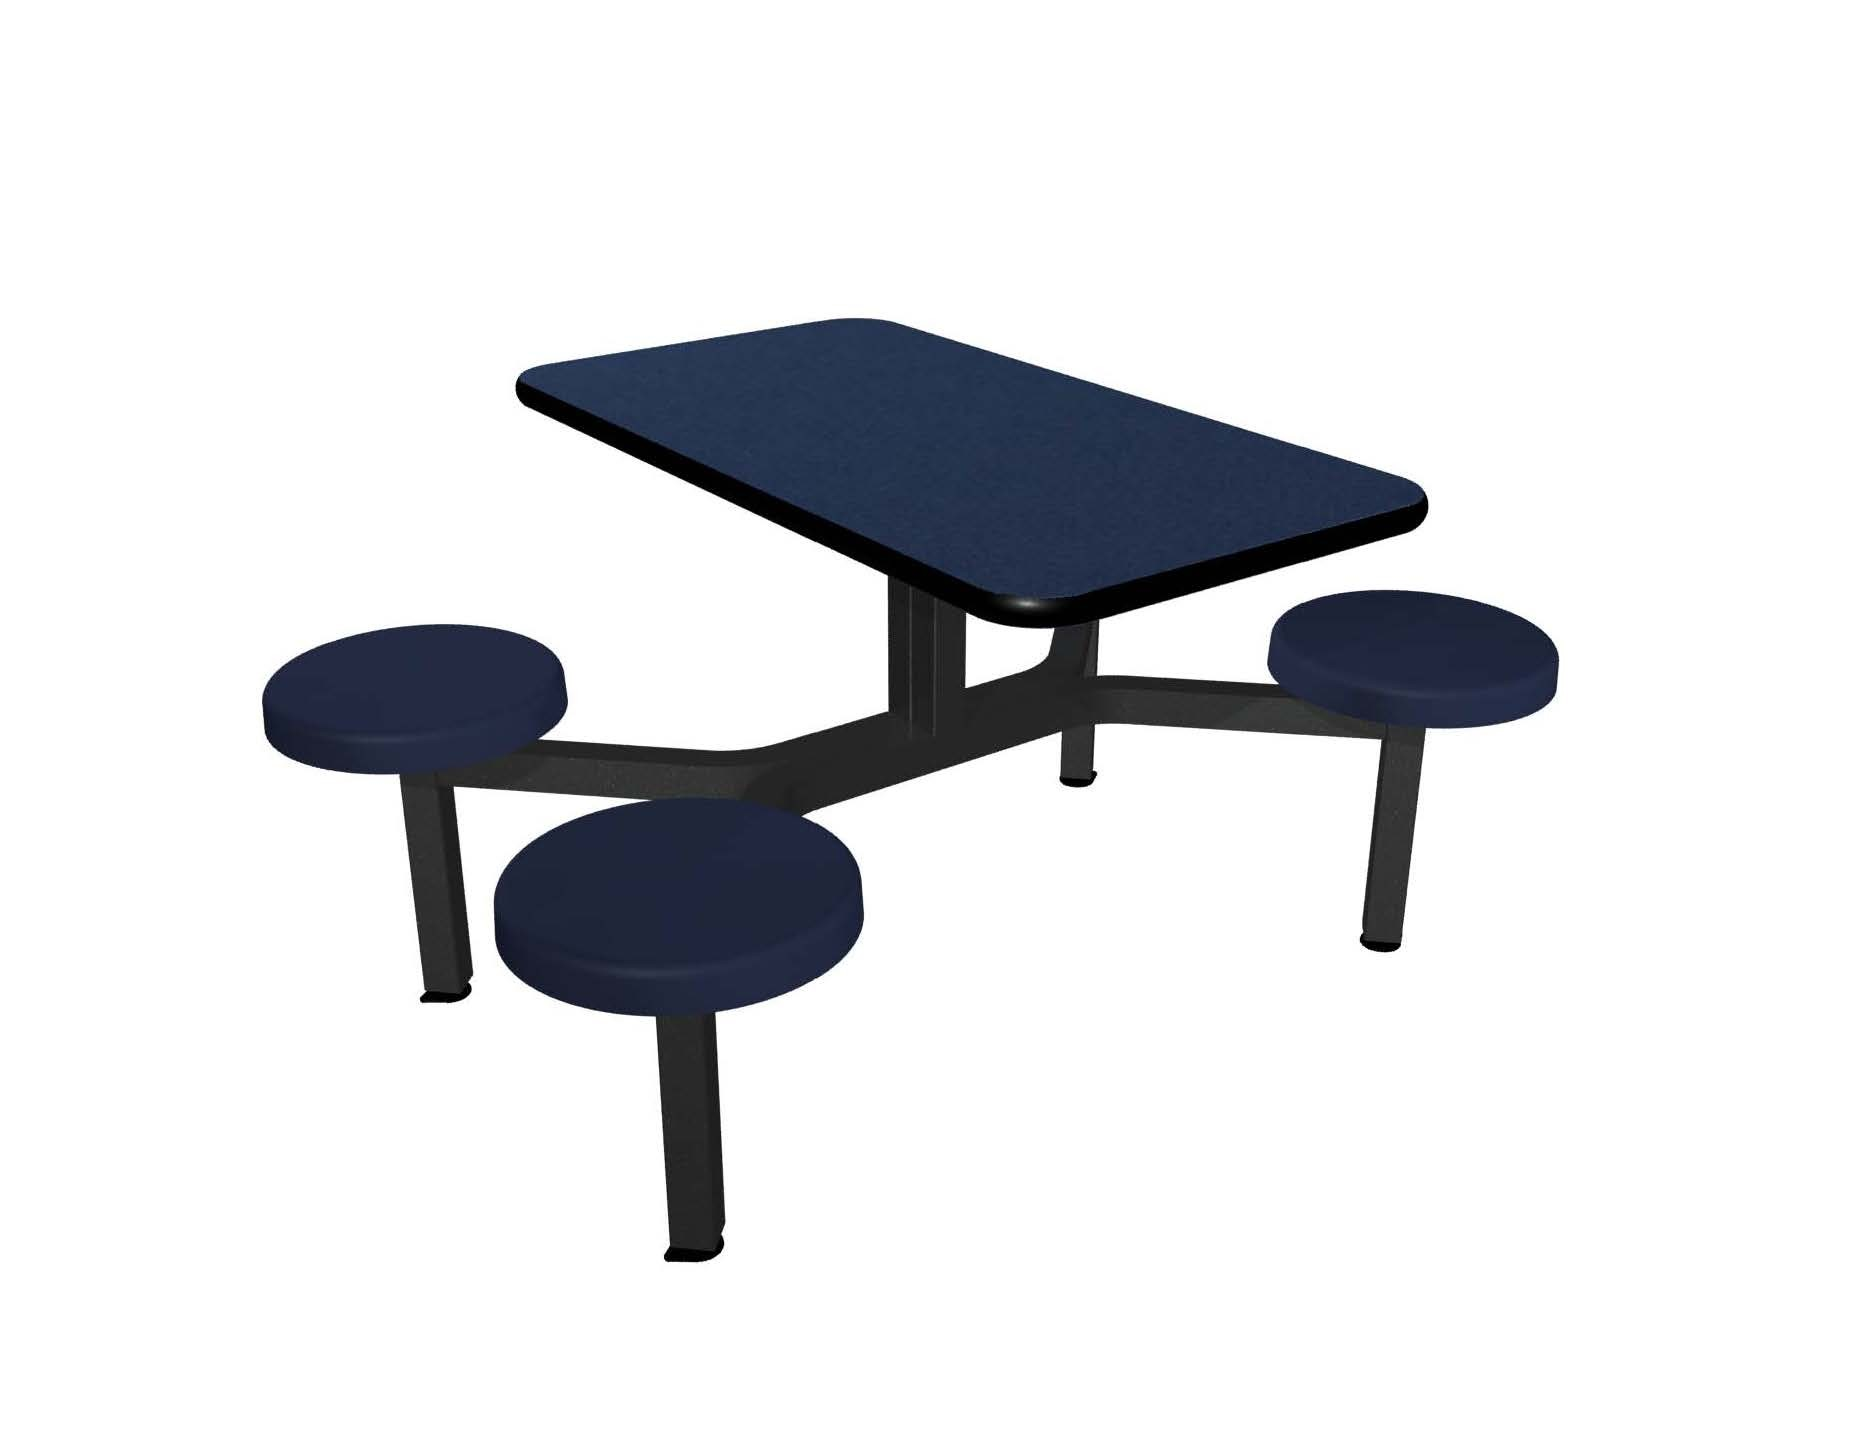 Navy Legacy laminate table top, Black vinyl edge, Composite button seat in Navy